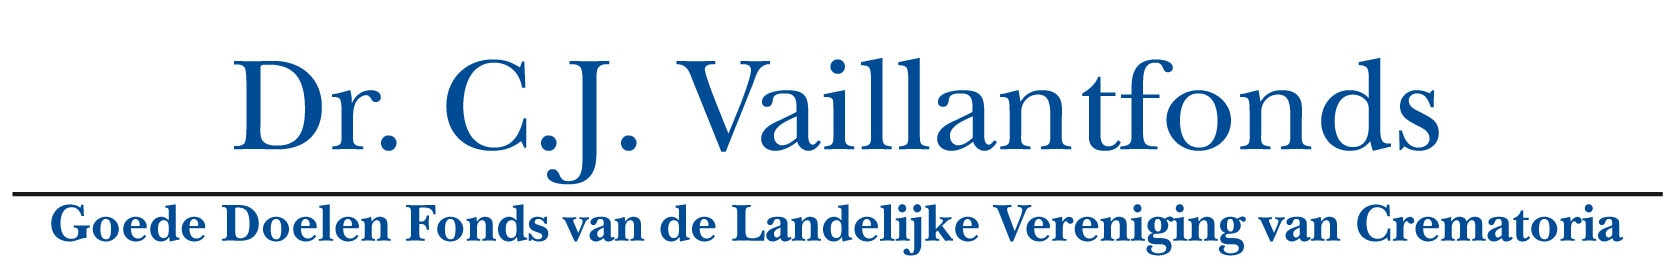 Dr. Vaillantfonds